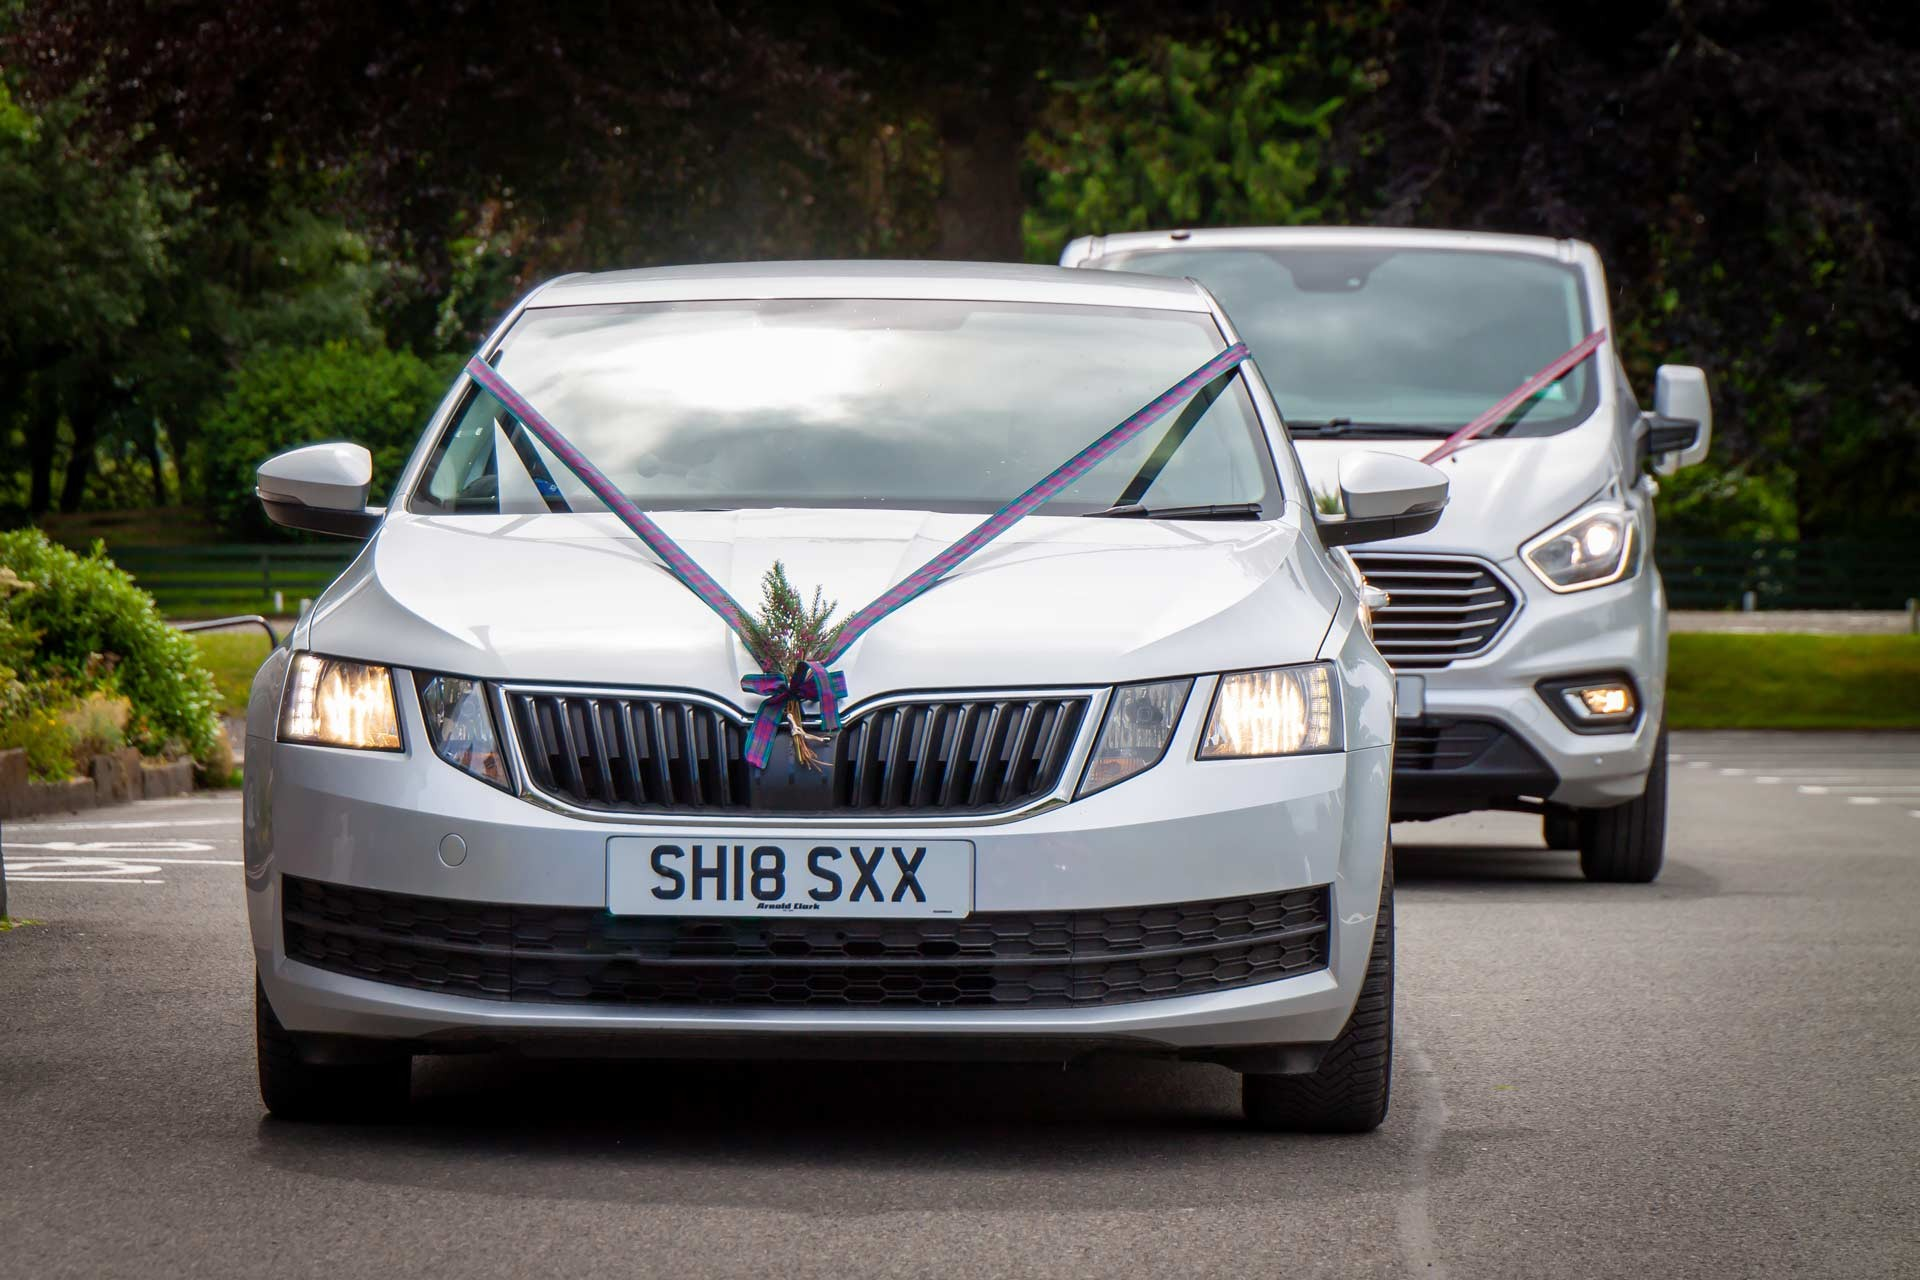 10 Executive travel wedding cars